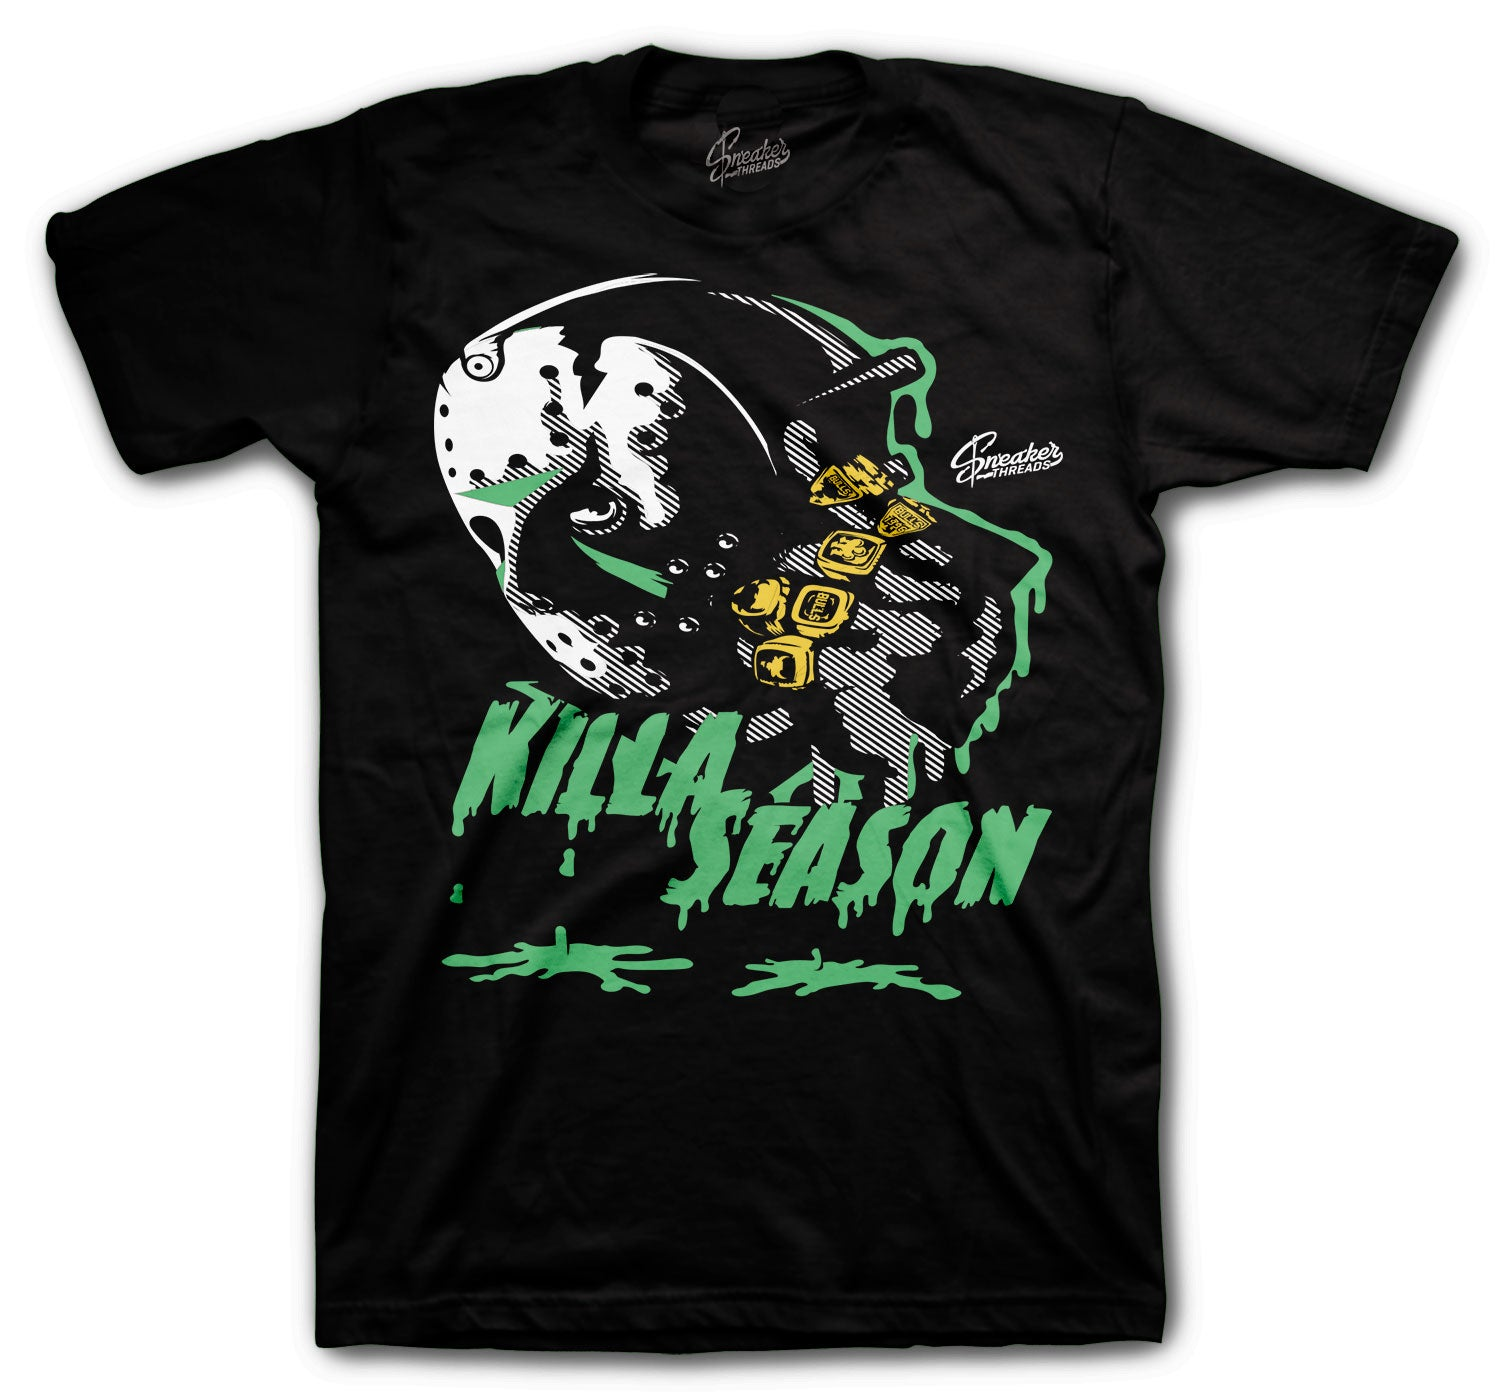 Jordan 1 Zen Green Killa Season Shirt